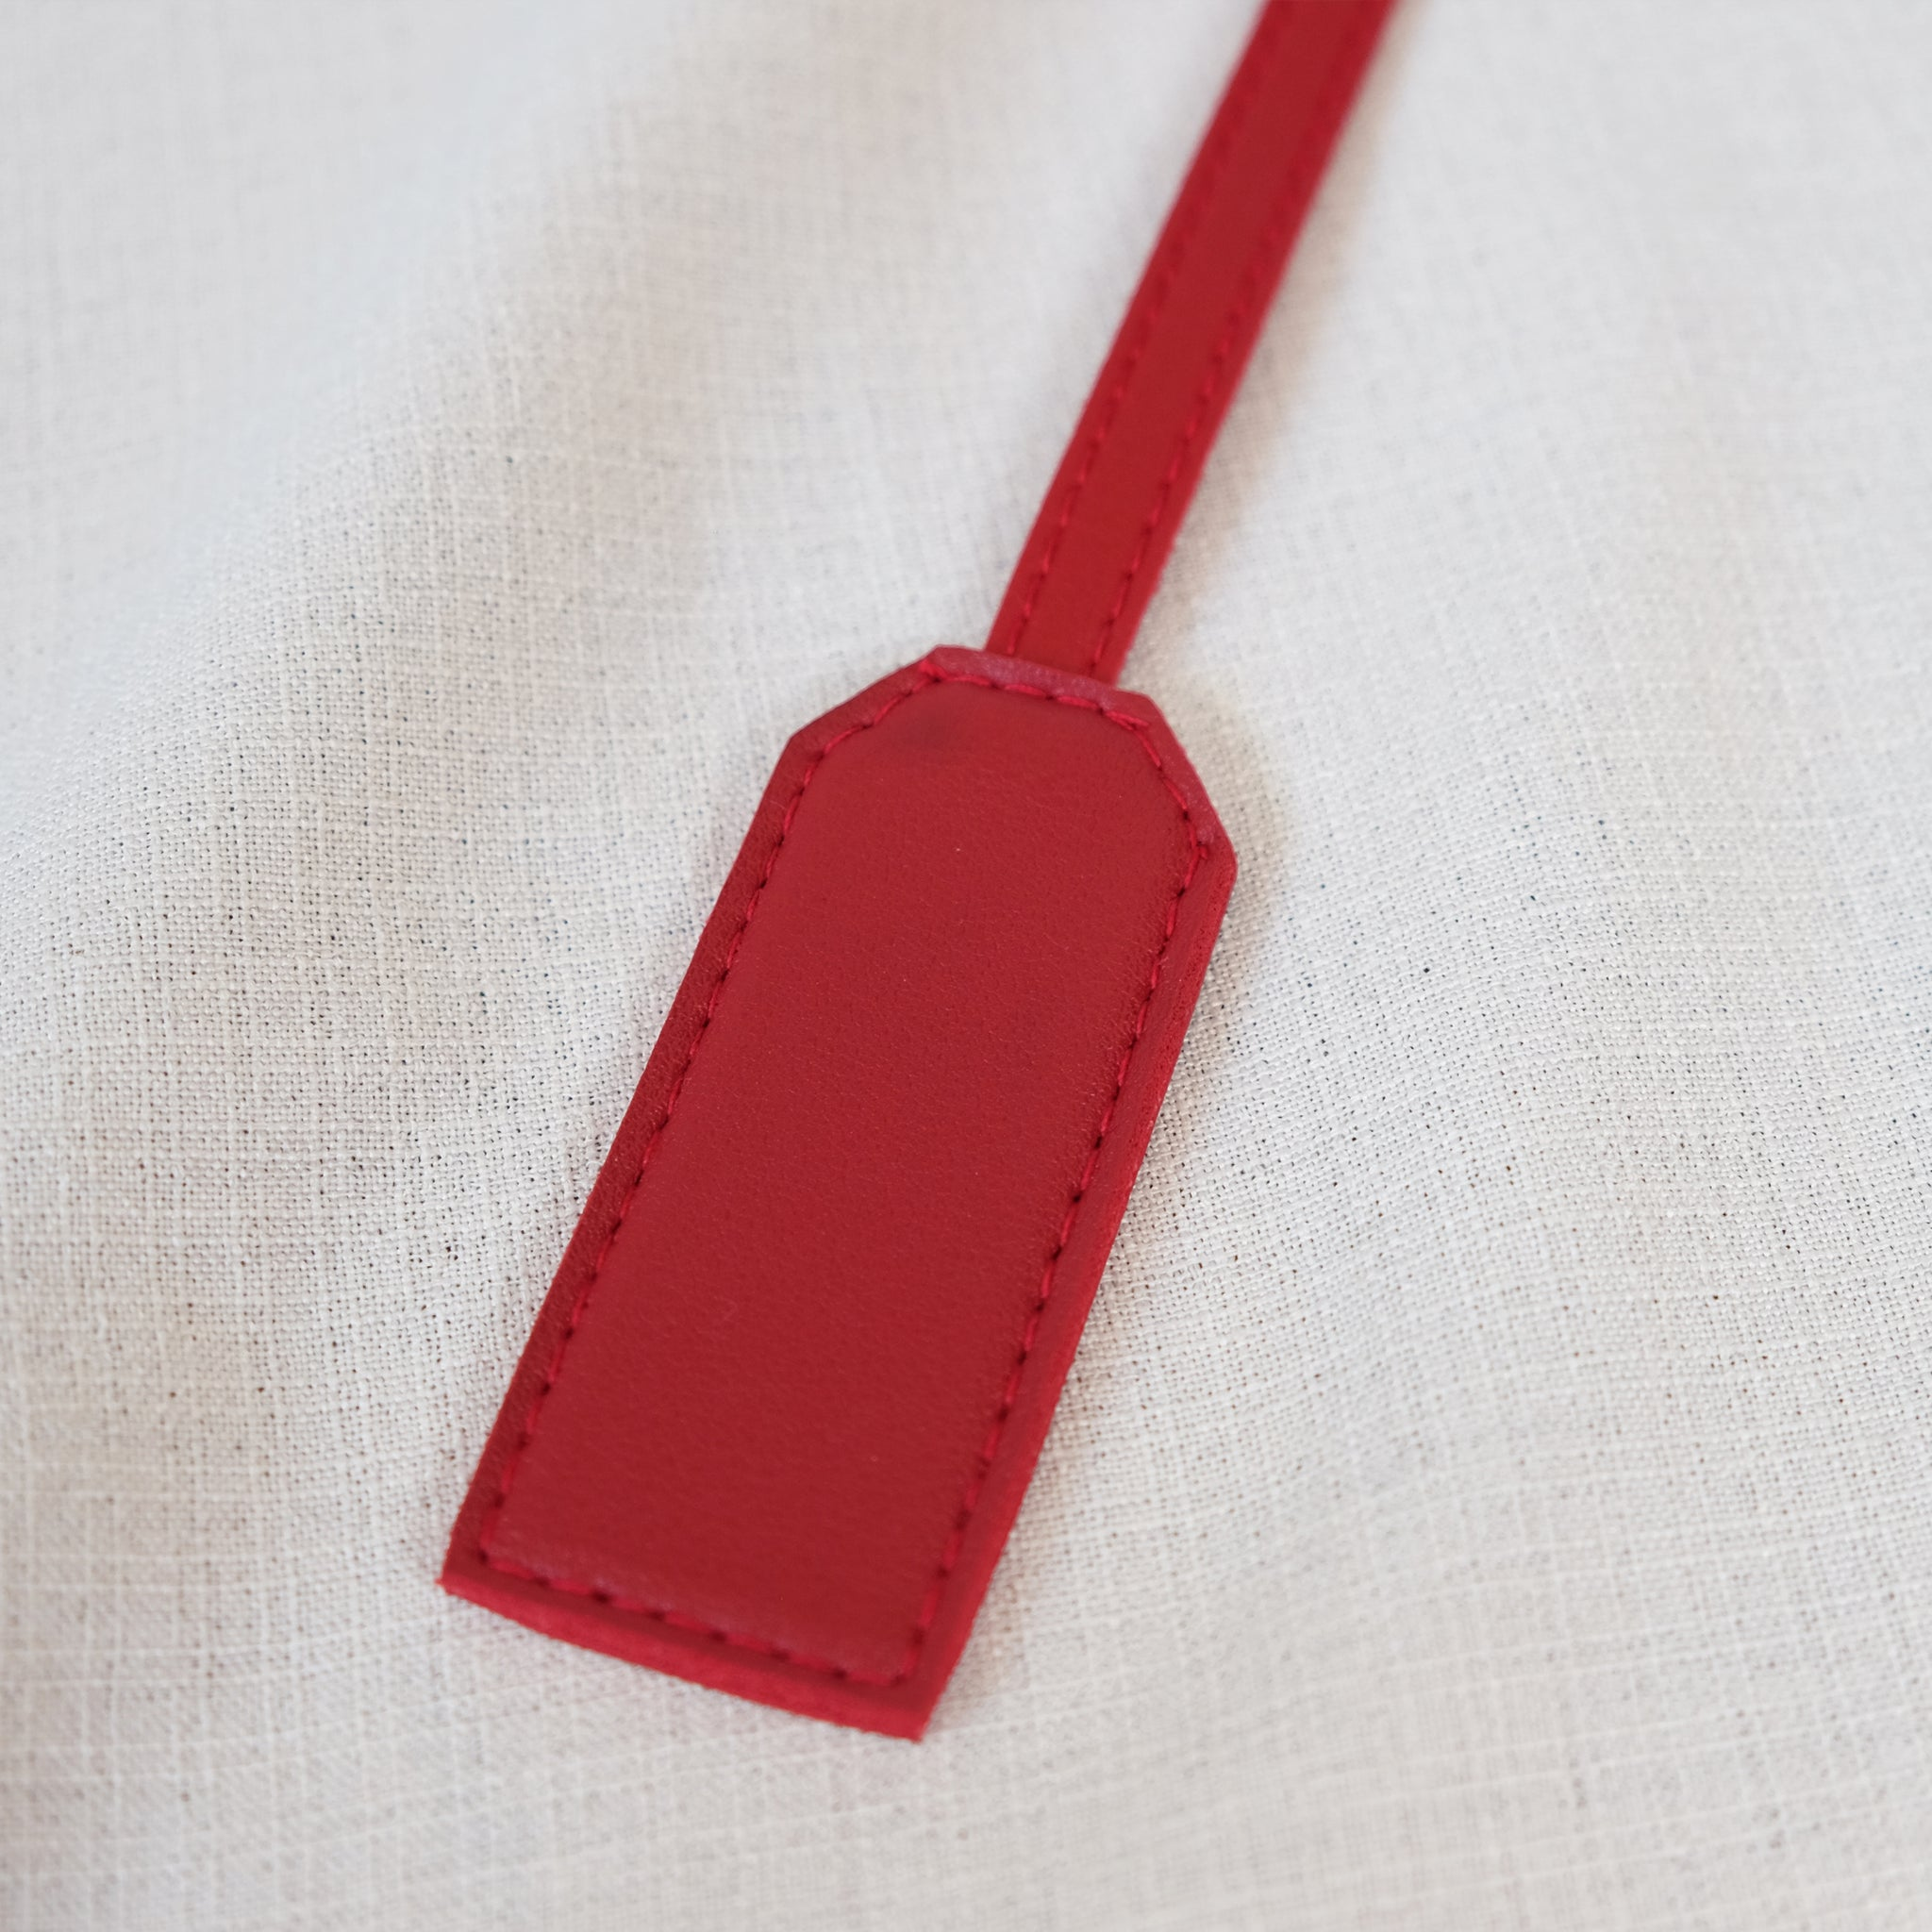 Bag Tag in Red